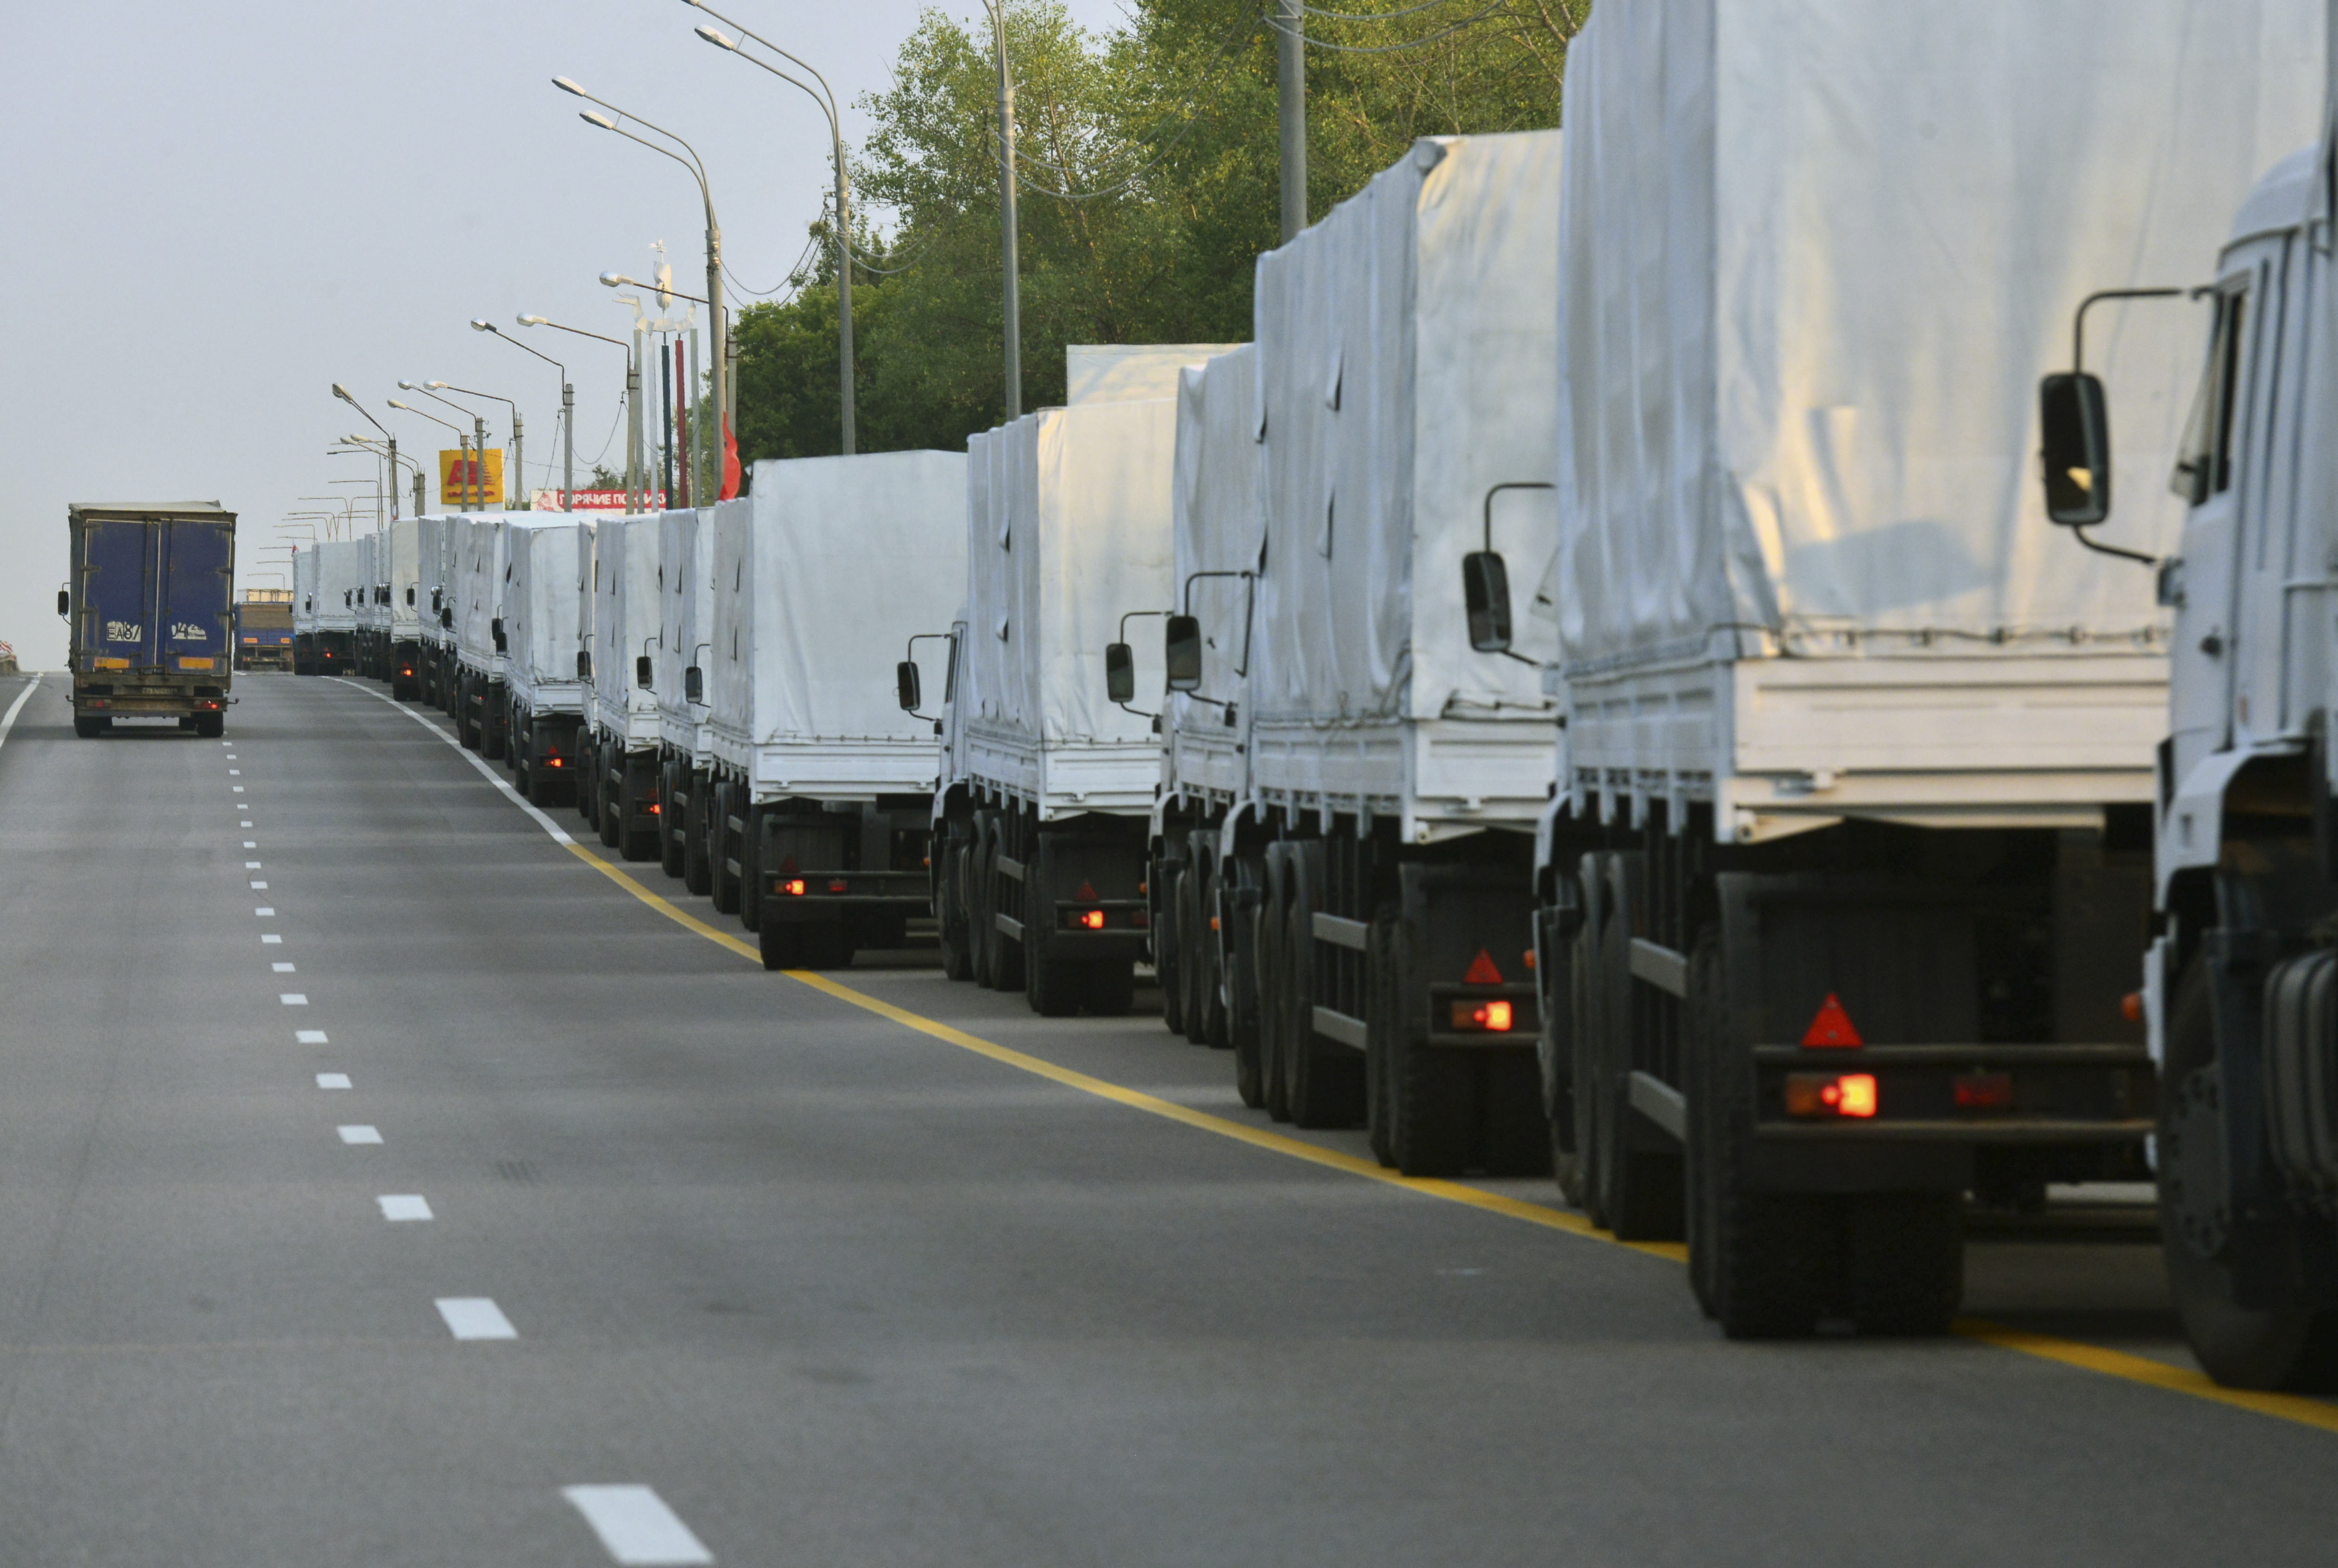 A Russian convoy of trucks carrying humanitarian aid for Ukraine stops along a road in the city of Voronezh August 12, 2014. The convoy carrying tons of humanitarian aid left on Tuesday for eastern Ukraine, where government forces are closing in on pro-Ru